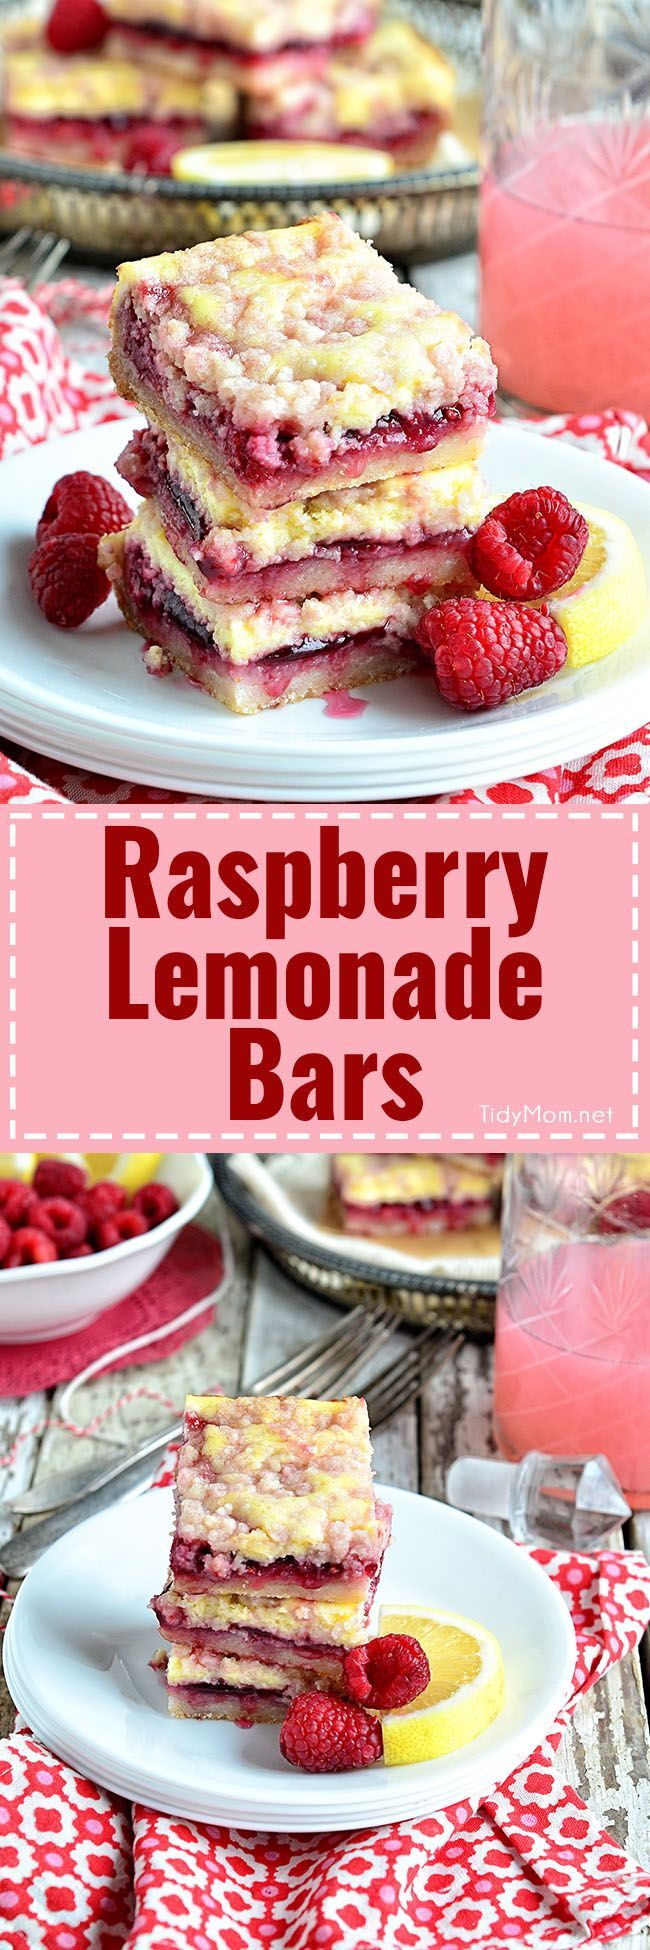 Raspberry Lemonade Bars are bright, cheery, packed with raspberries and tangy lemonade to help beat the winter blues, and the best part? There's a little cheesecake tucked in too. Raspberry Lemonade Bars with streusel topping recipe at TidyMom.net